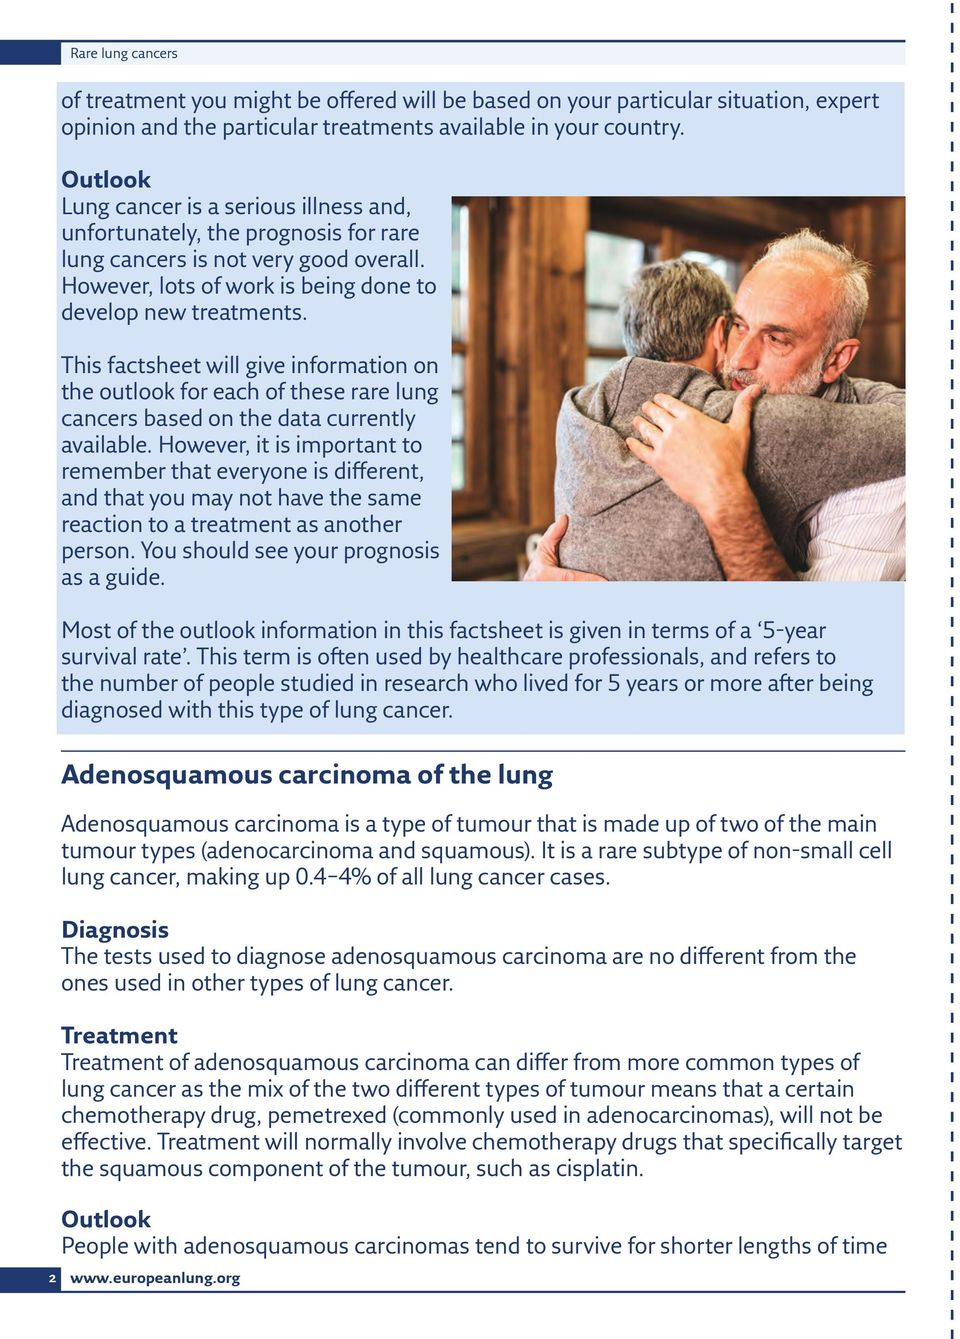 This factsheet will give information on the outlook for each of these rare lung cancers based on the data currently available.